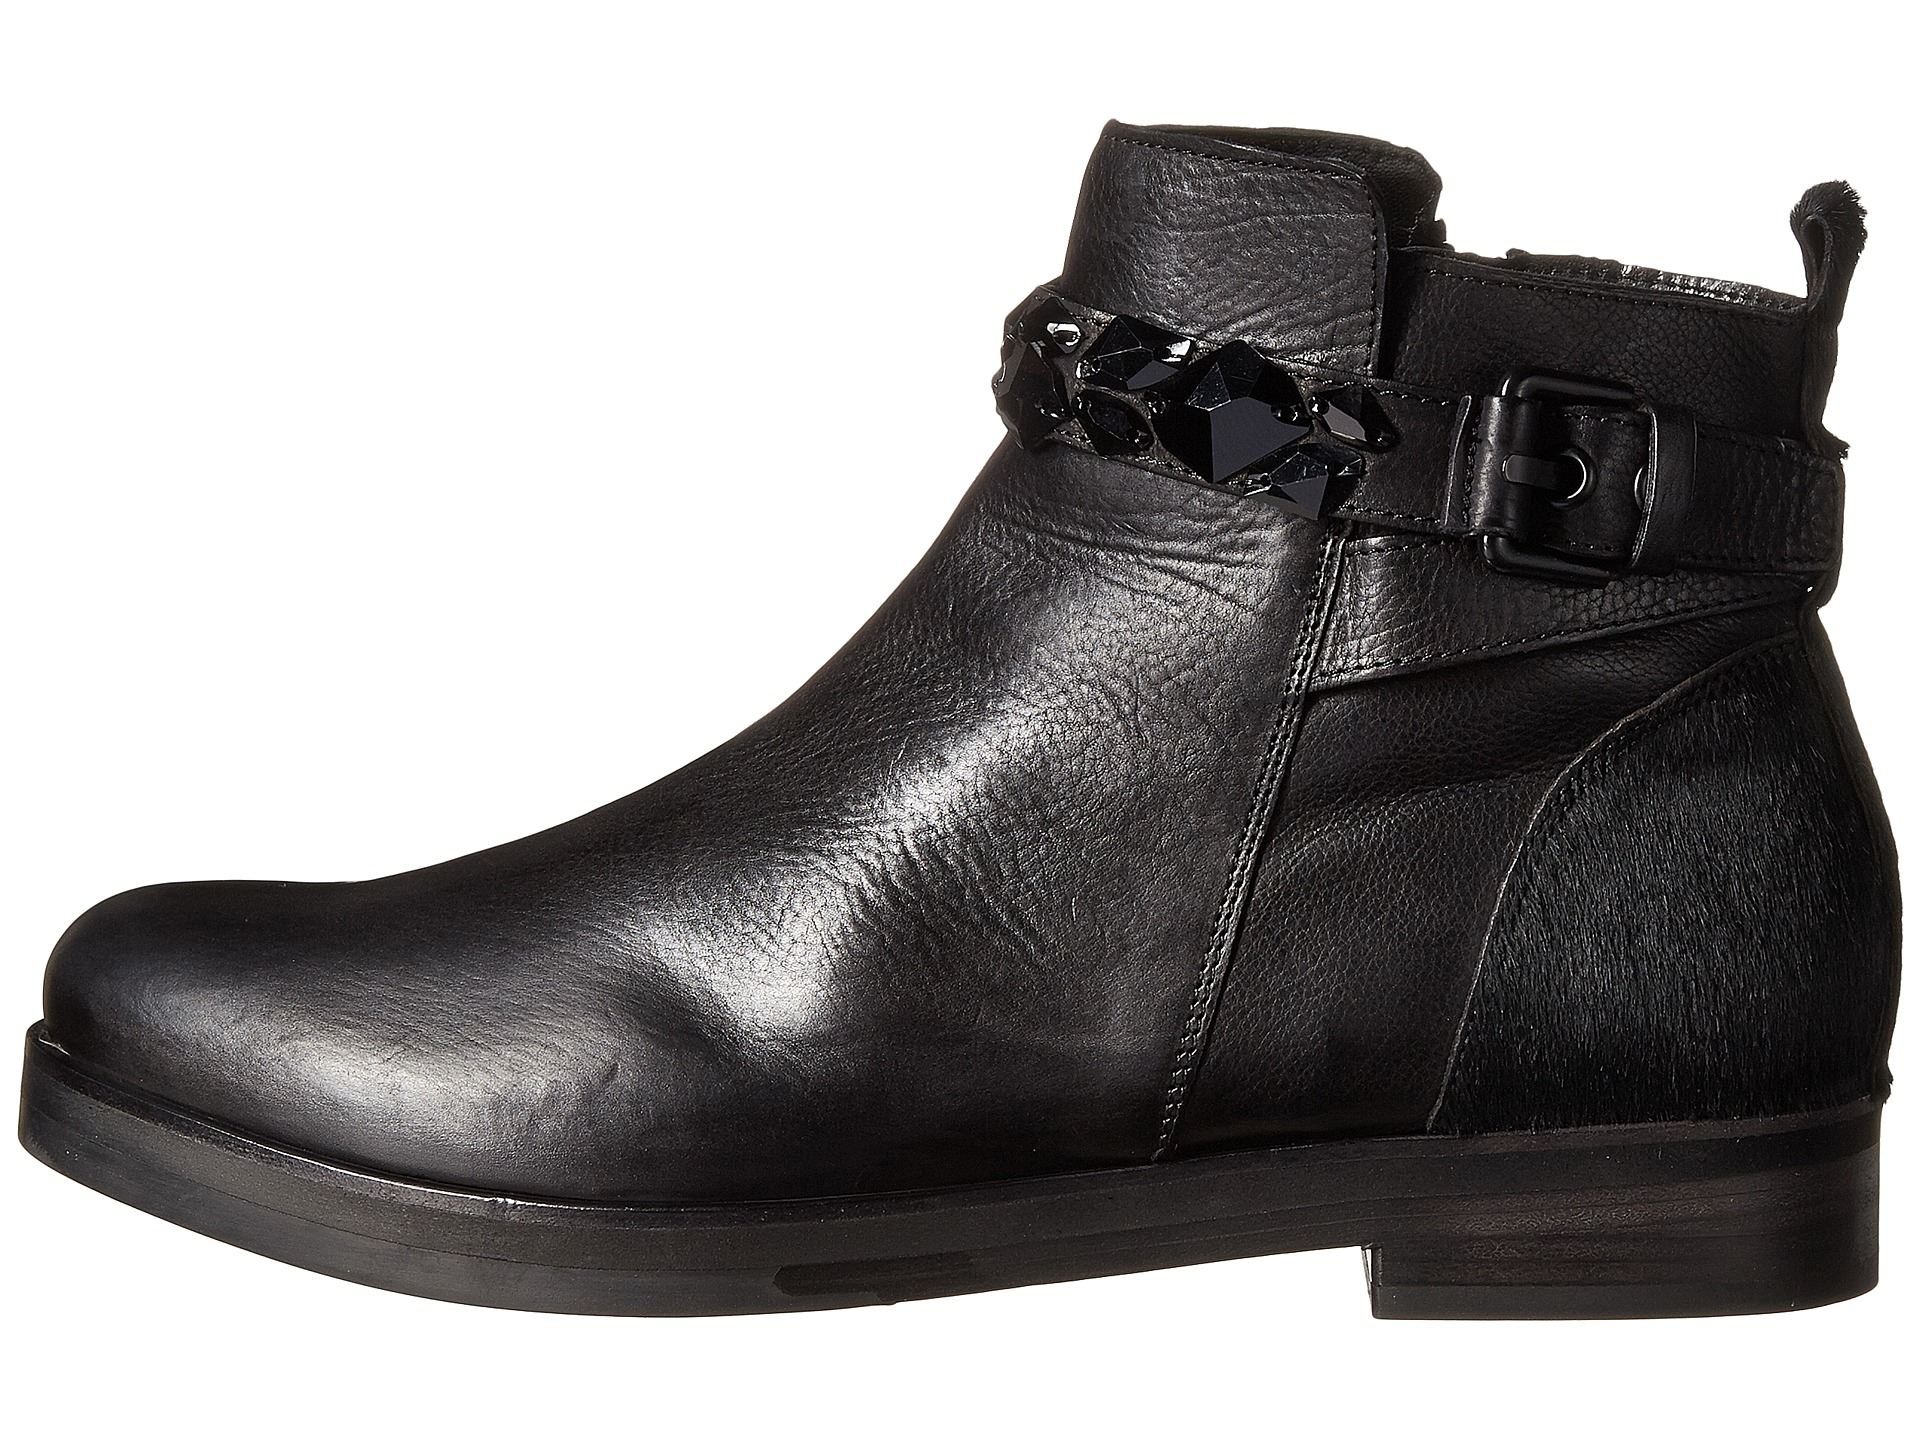 Kennel & schmenger Jess Smooth Calf Ankle Boot in Black